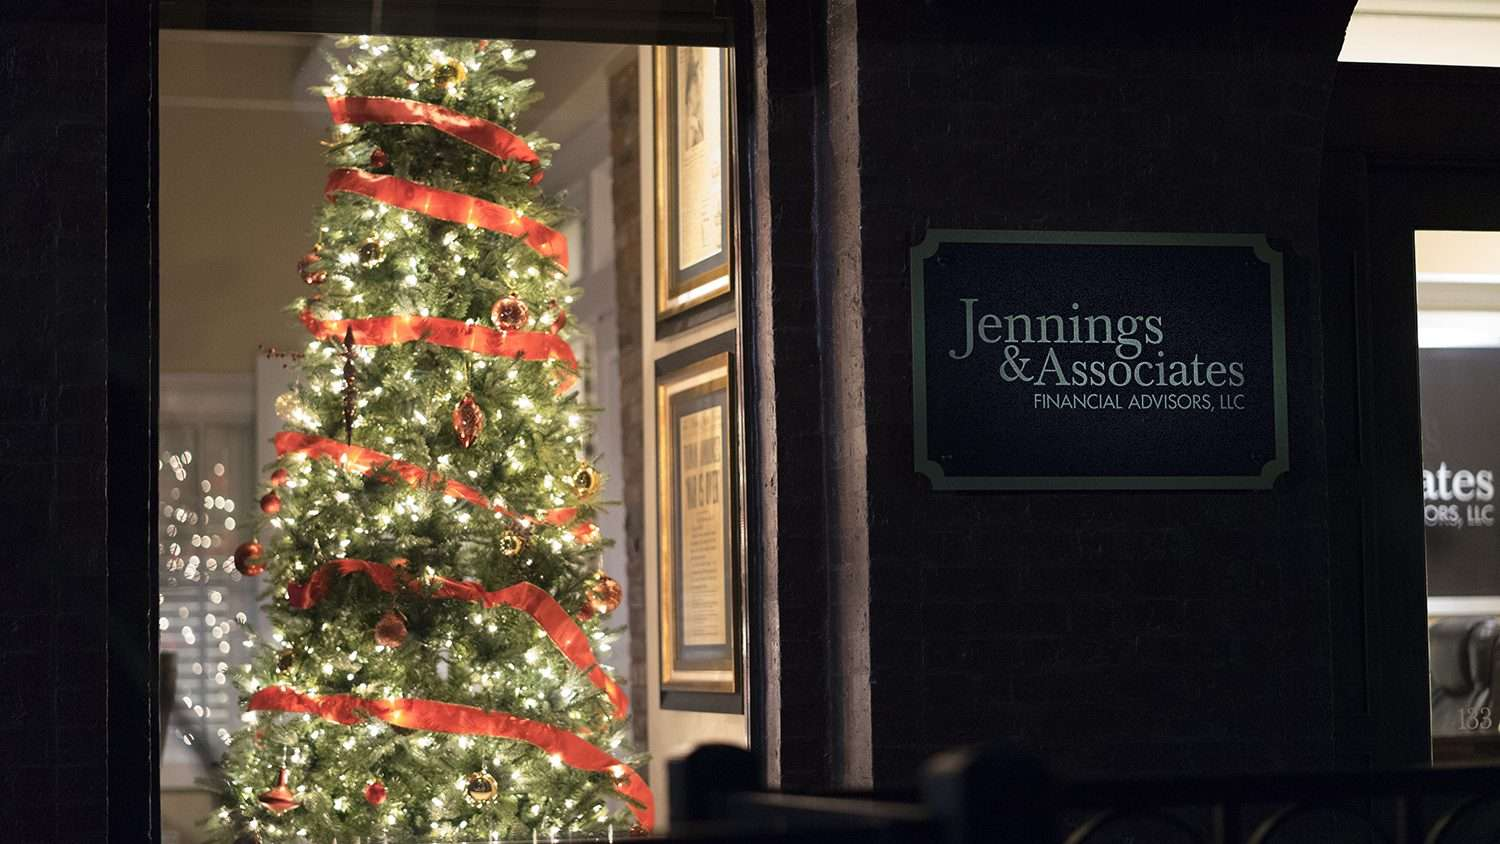 Dec 7, 2017 - Christmas Tree at Jennings & Associates Financial Advisors on Market House Square, Paducah, KY/photonews247.com